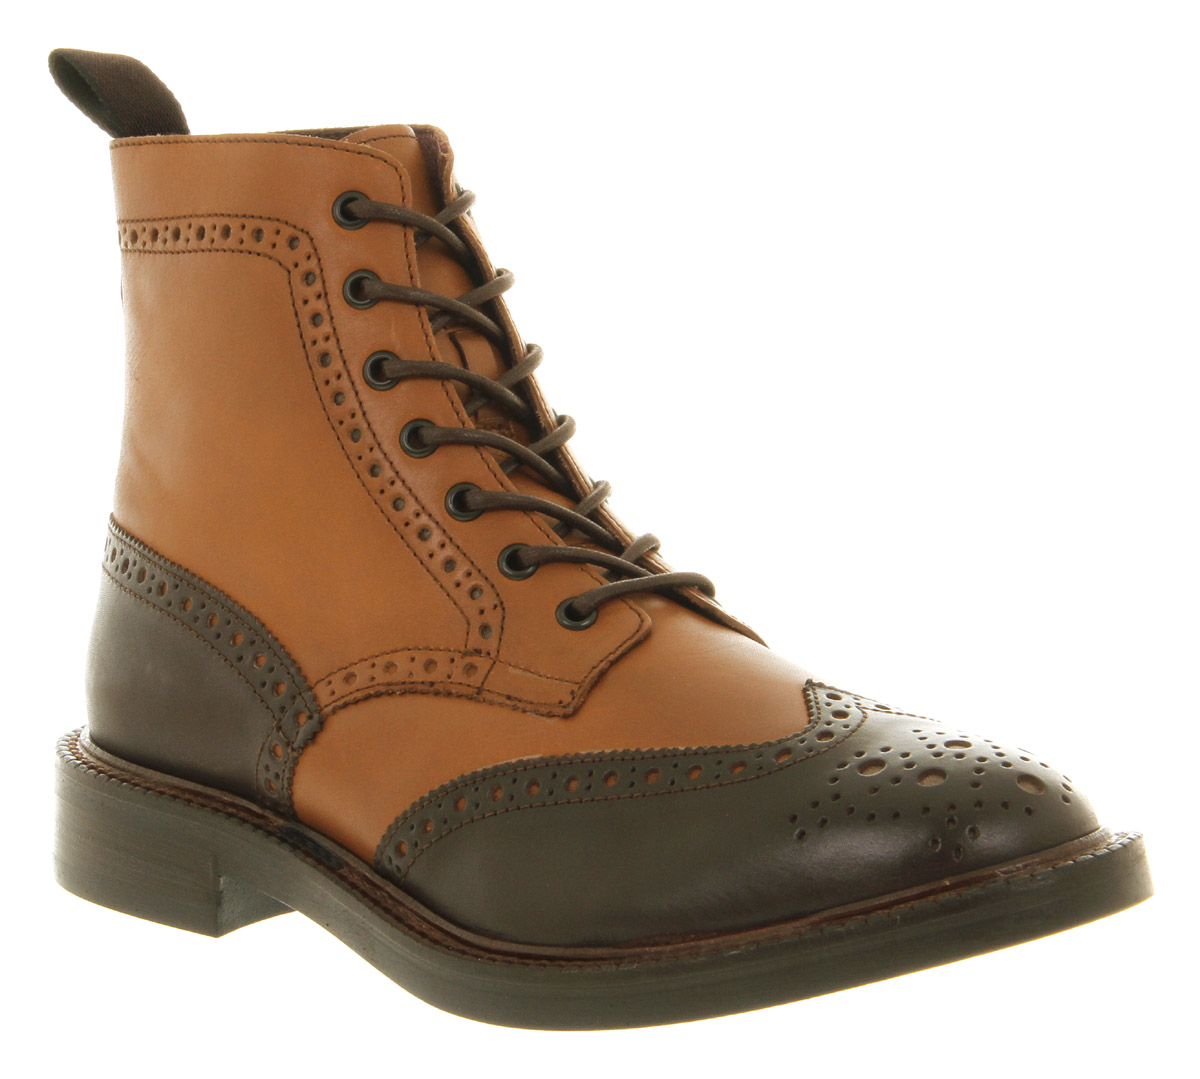 mens poste theodor brogue boot brown leather boots